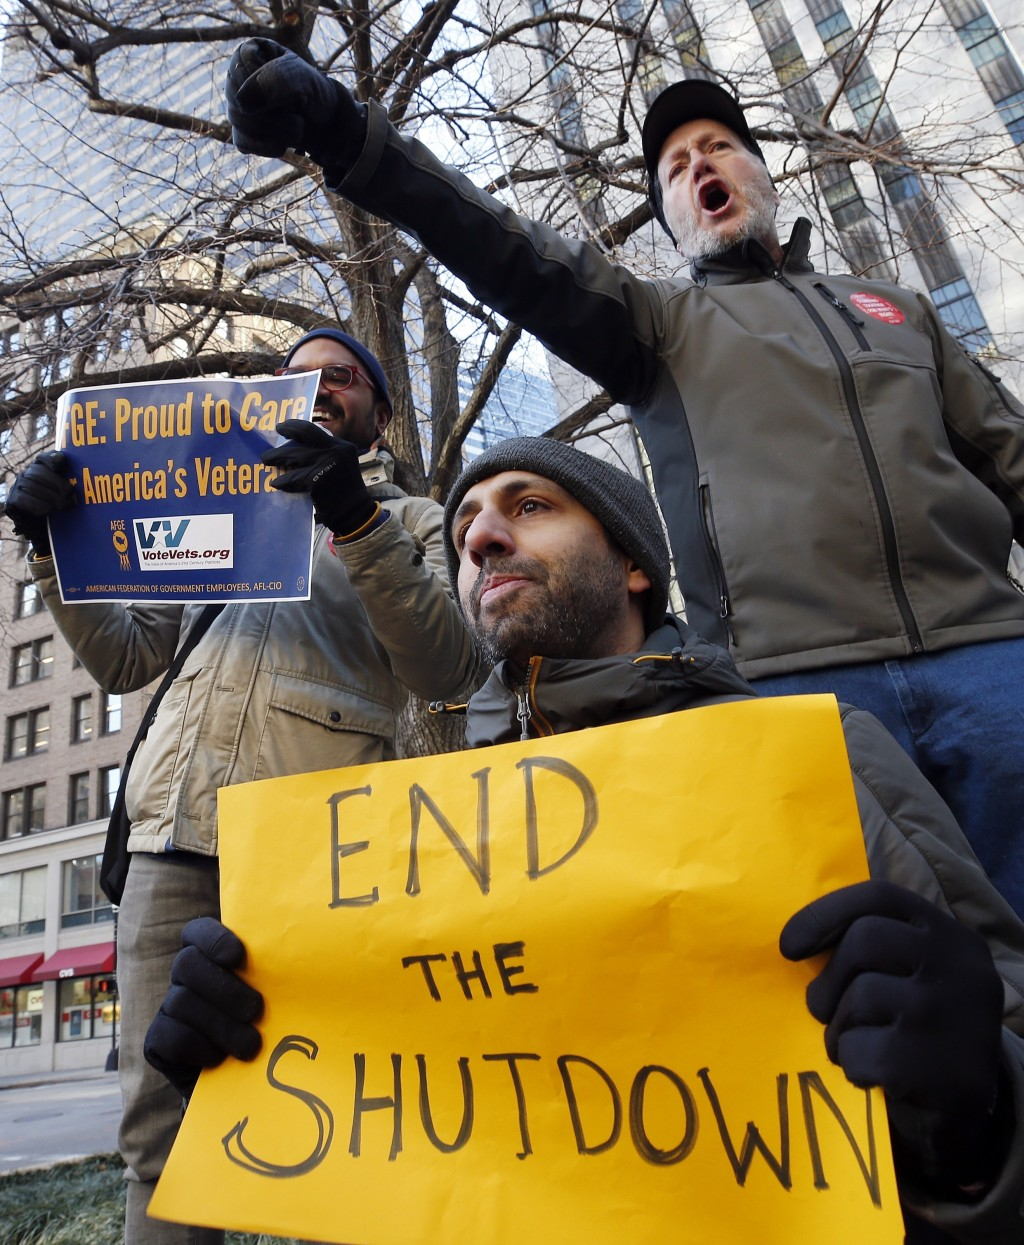 Government workers and their supporters hold signs during a protest in Boston, Friday, Jan.11, 2019. The workers rallied with Democratic U.S. Sen. Ed